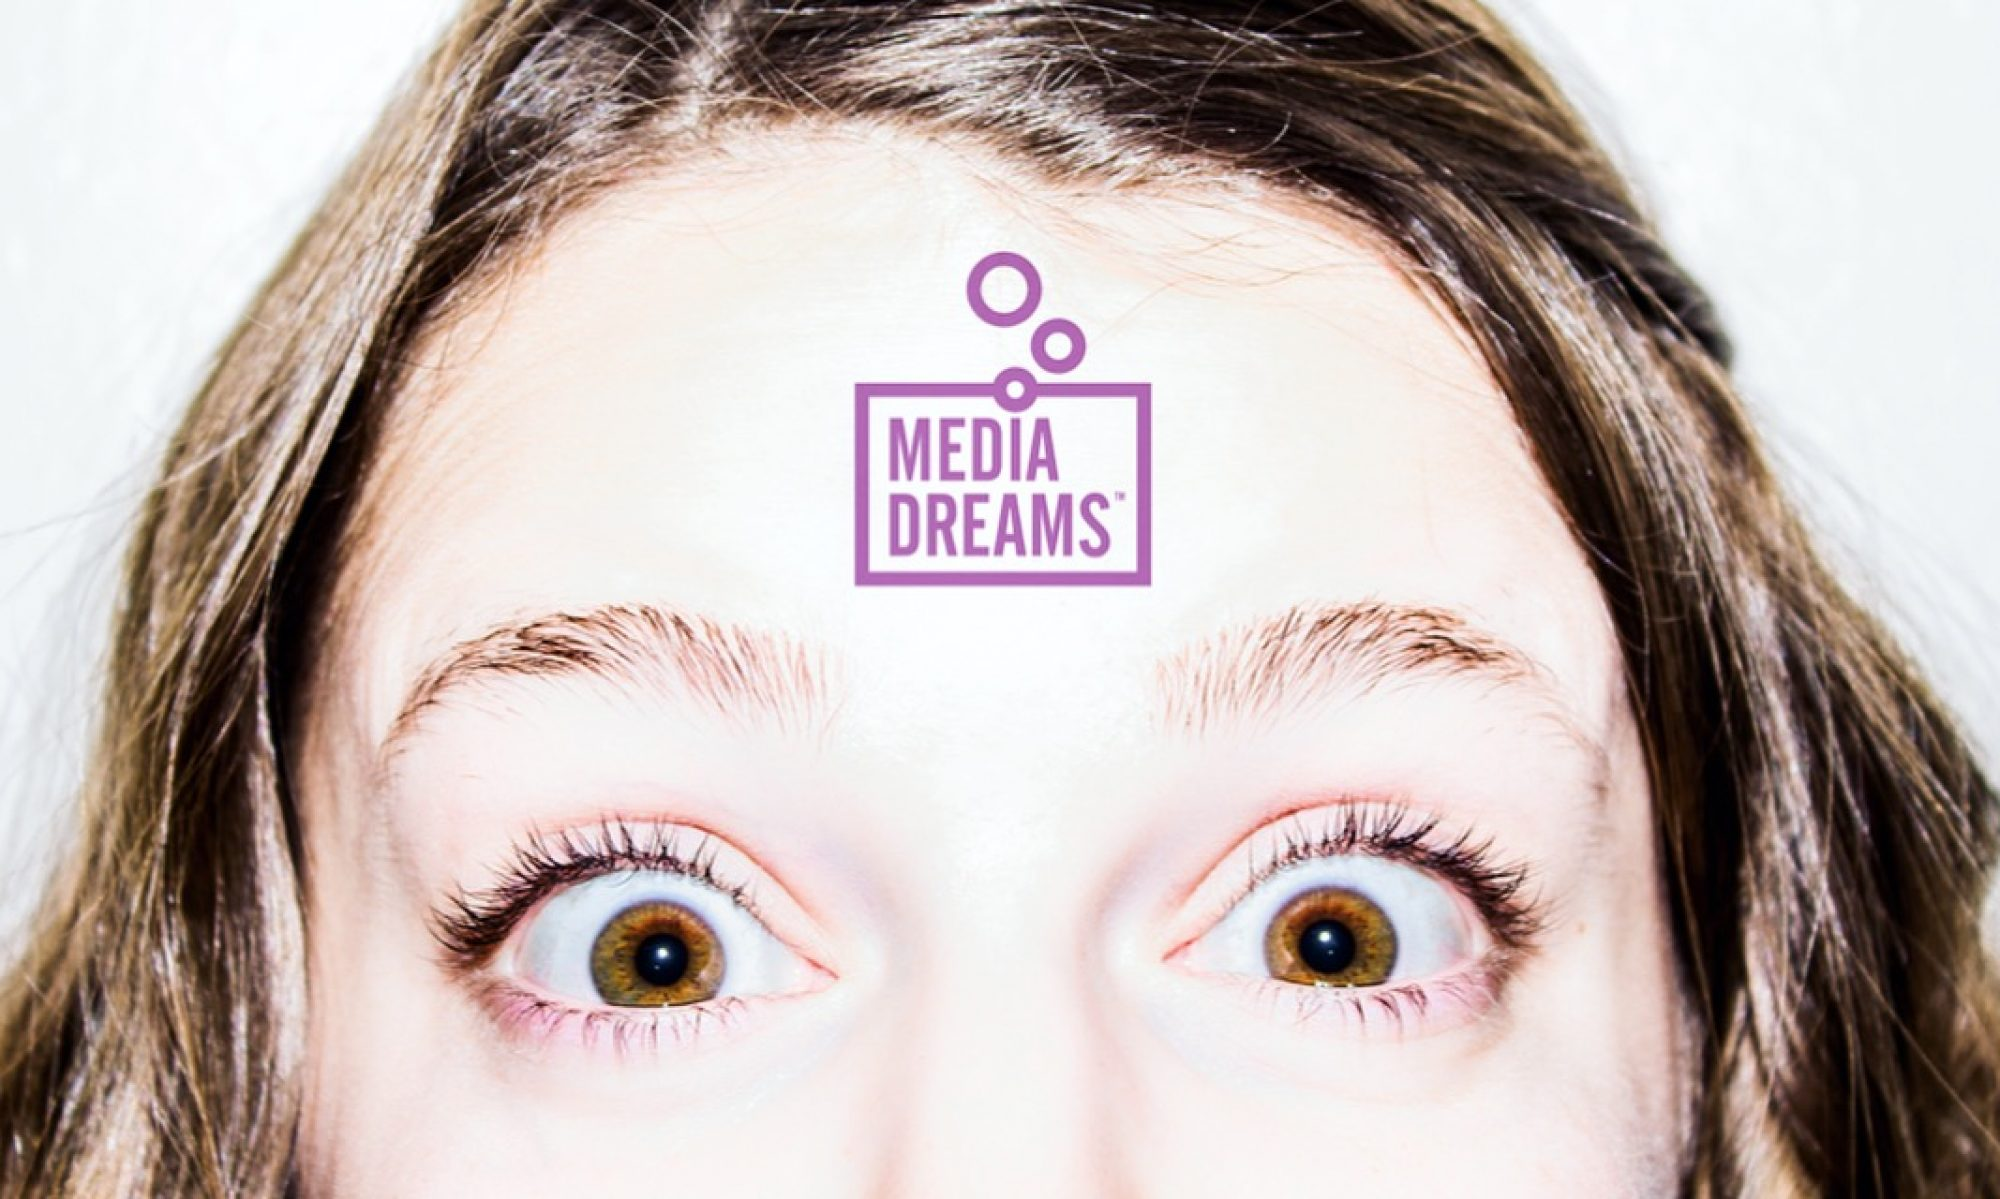 MEDIA DREAMS | Creative content & storytelling agency with performances